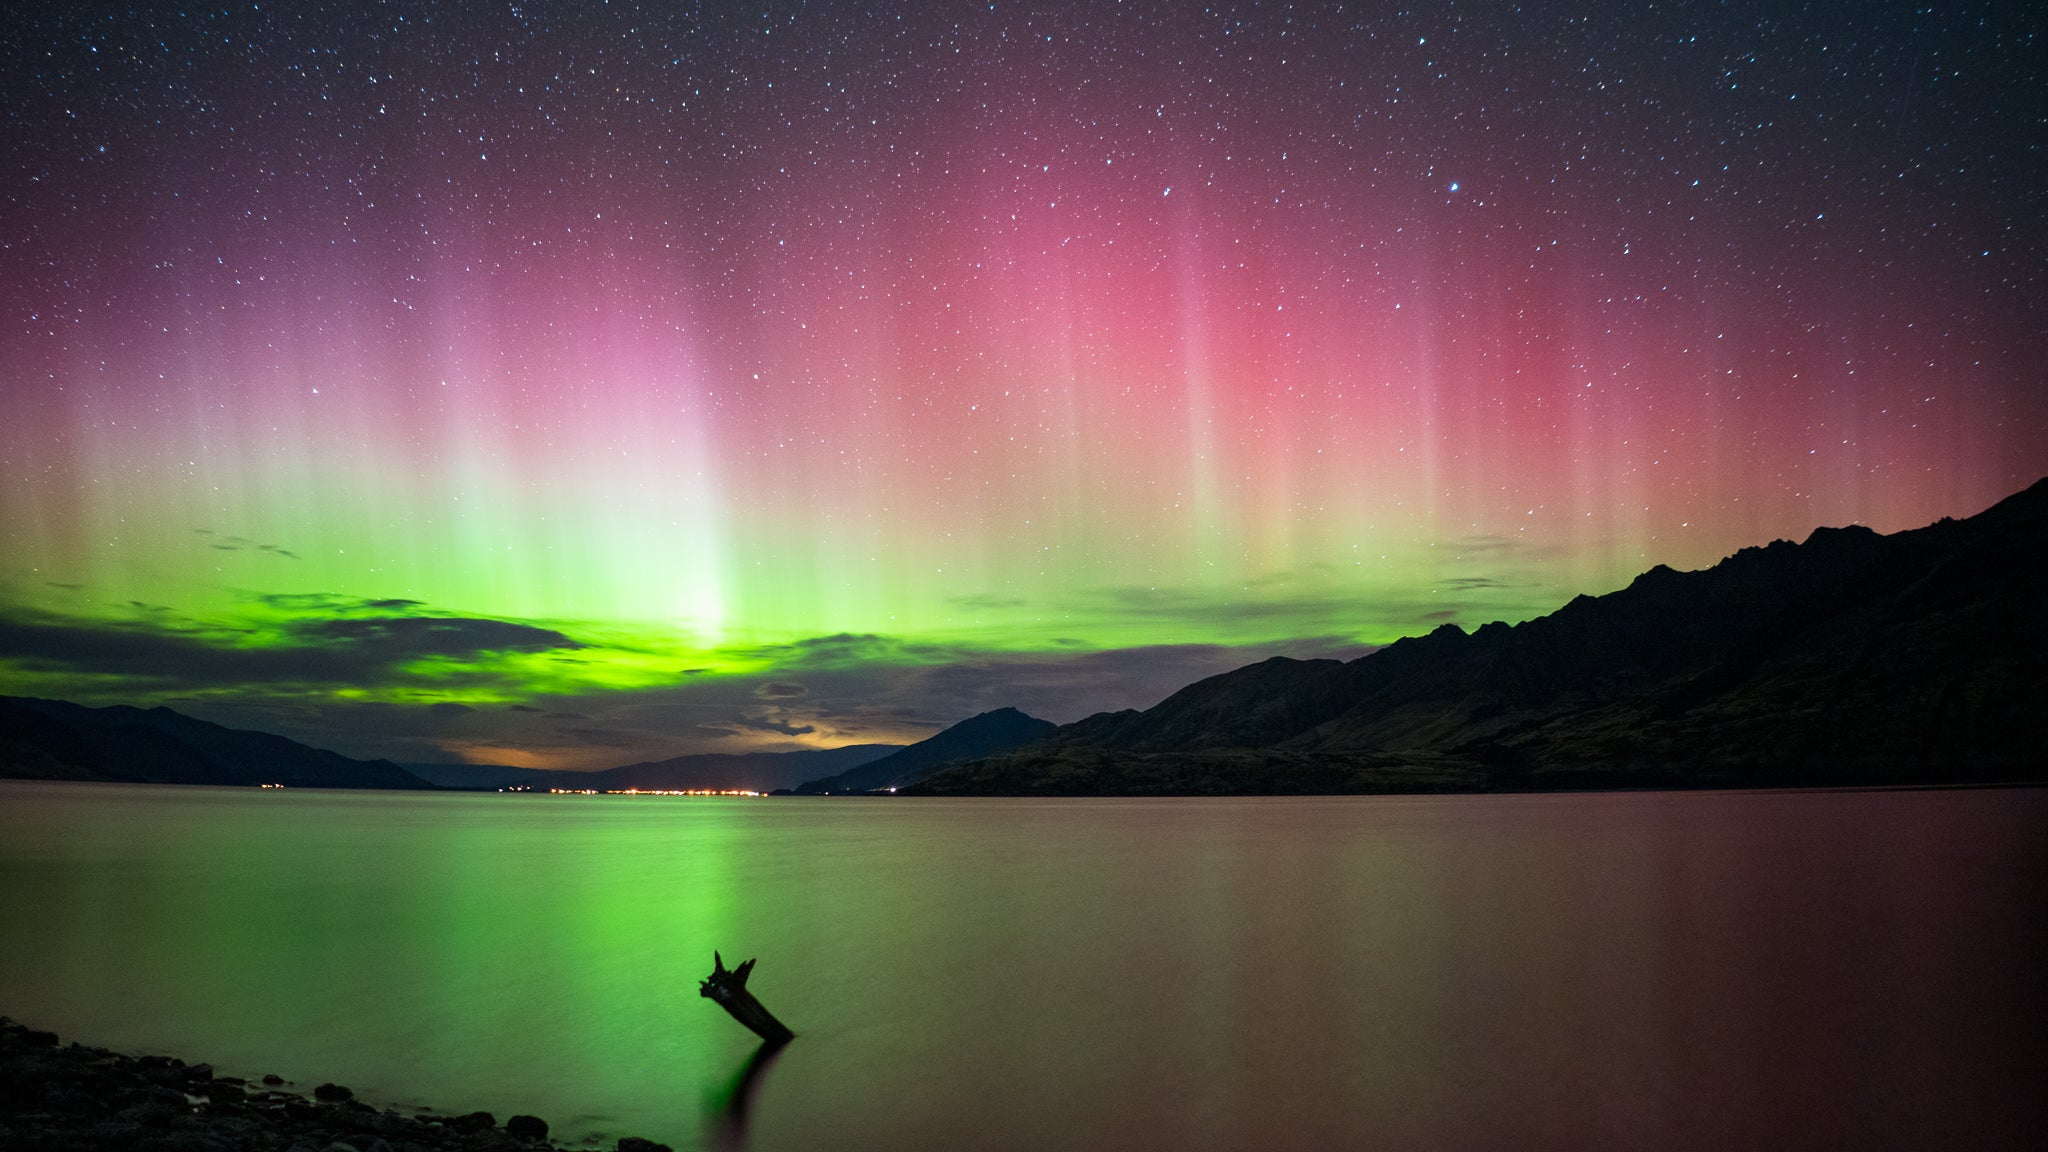 Pink and green southern light over New Zealand. Photo by Levi Harrell